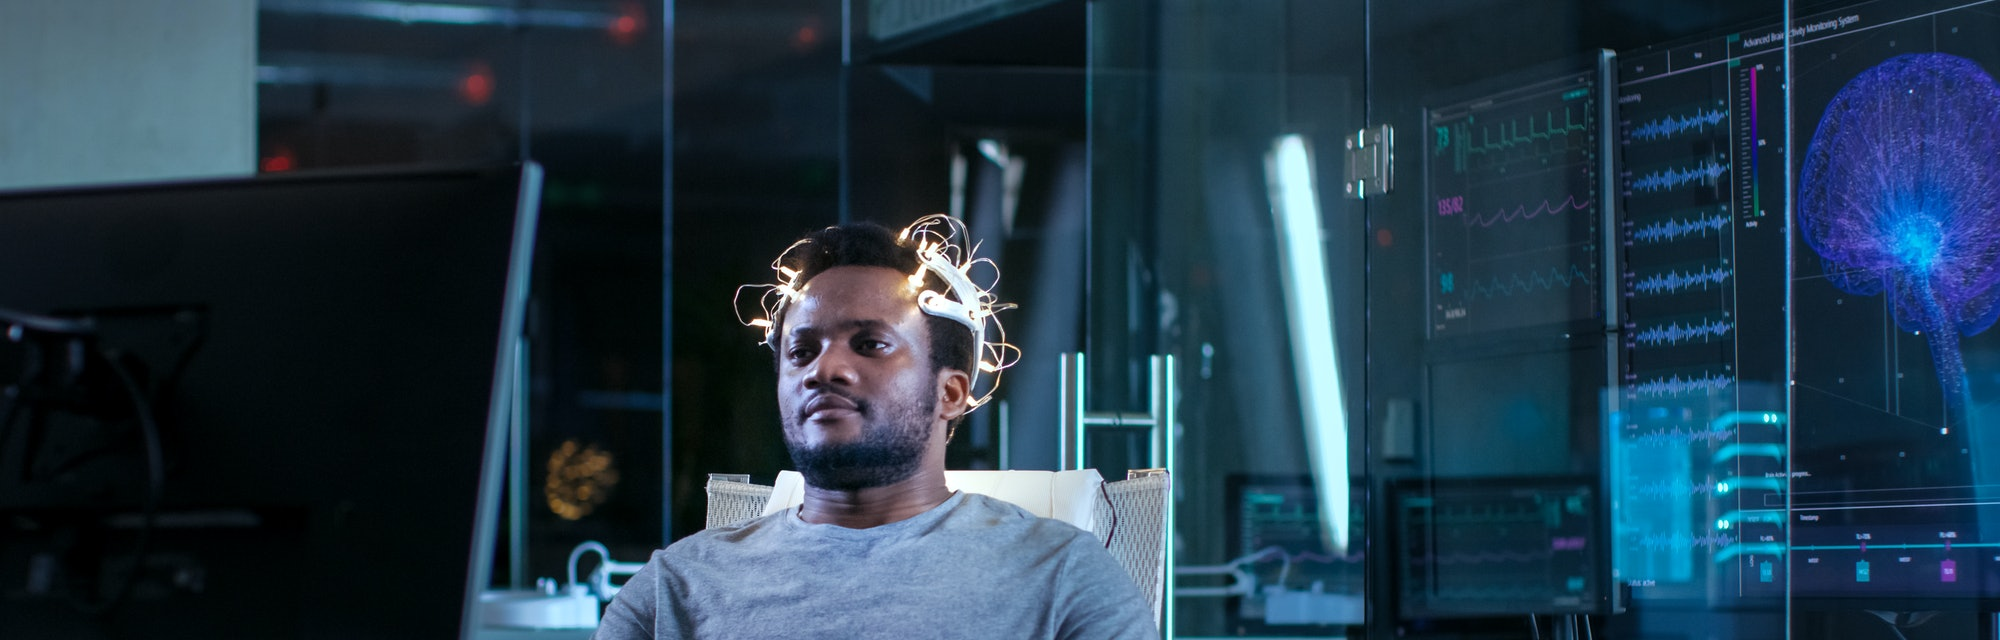 Man Wearing Brainwave Scanning Headset Sits in a Chair while Watching Stimulating Images on Display at Night. In the Modern Brain Study Laboratory Monitors Show EEG Reading and Brain Model.